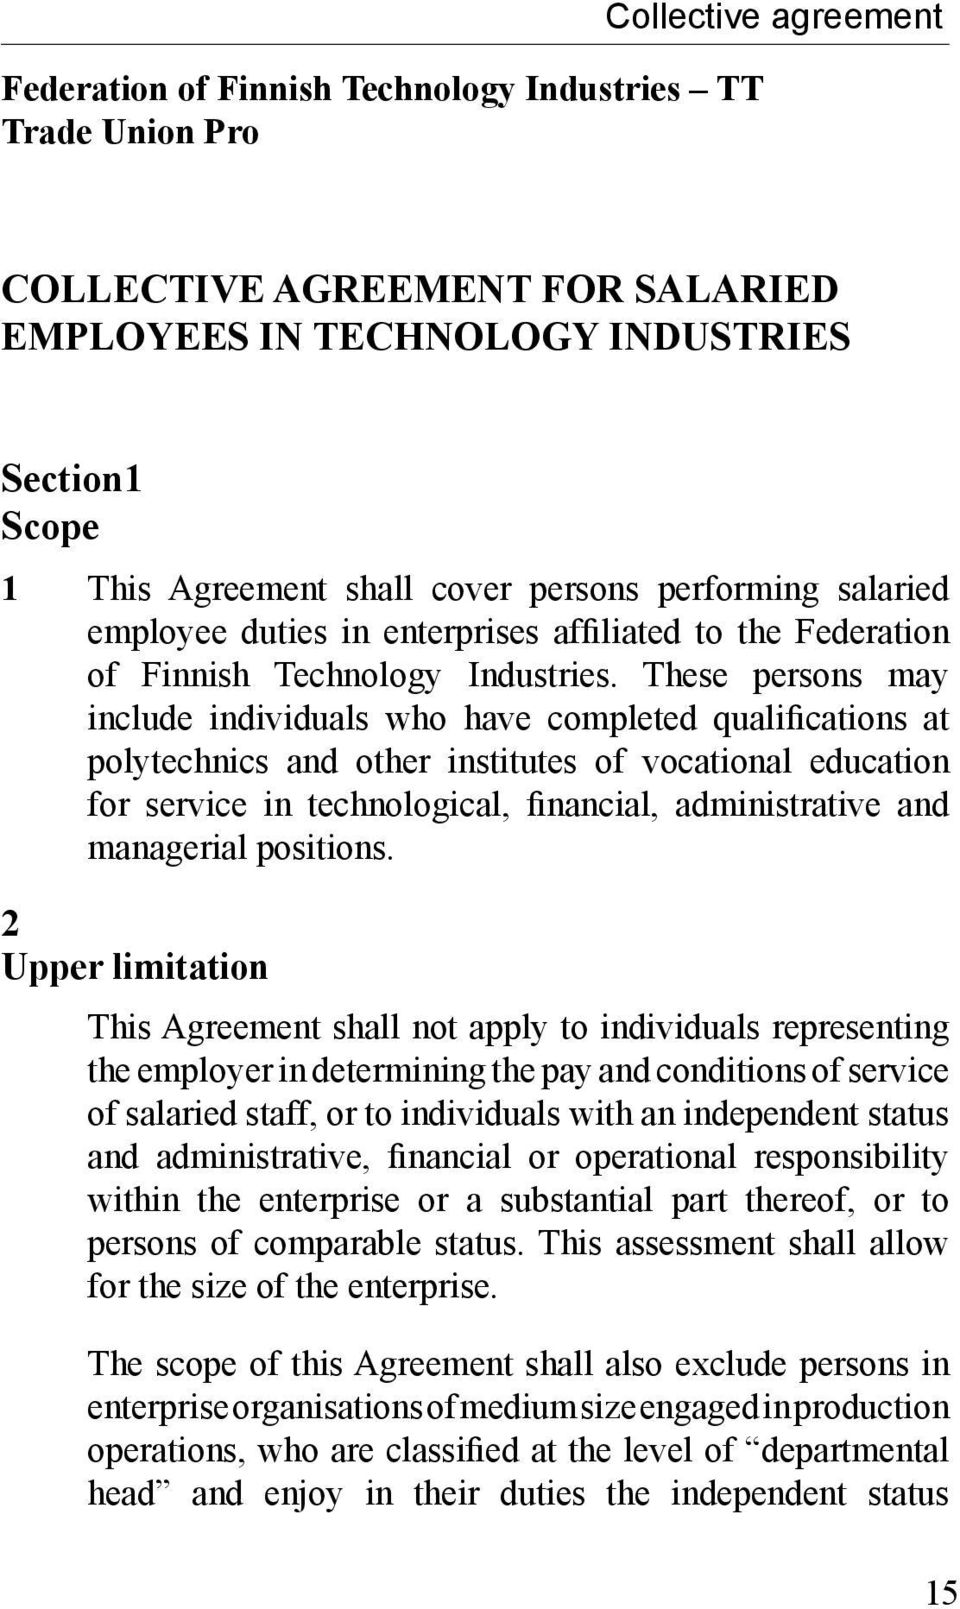 Collective Agreement For Salaried Employees In Technology Industries